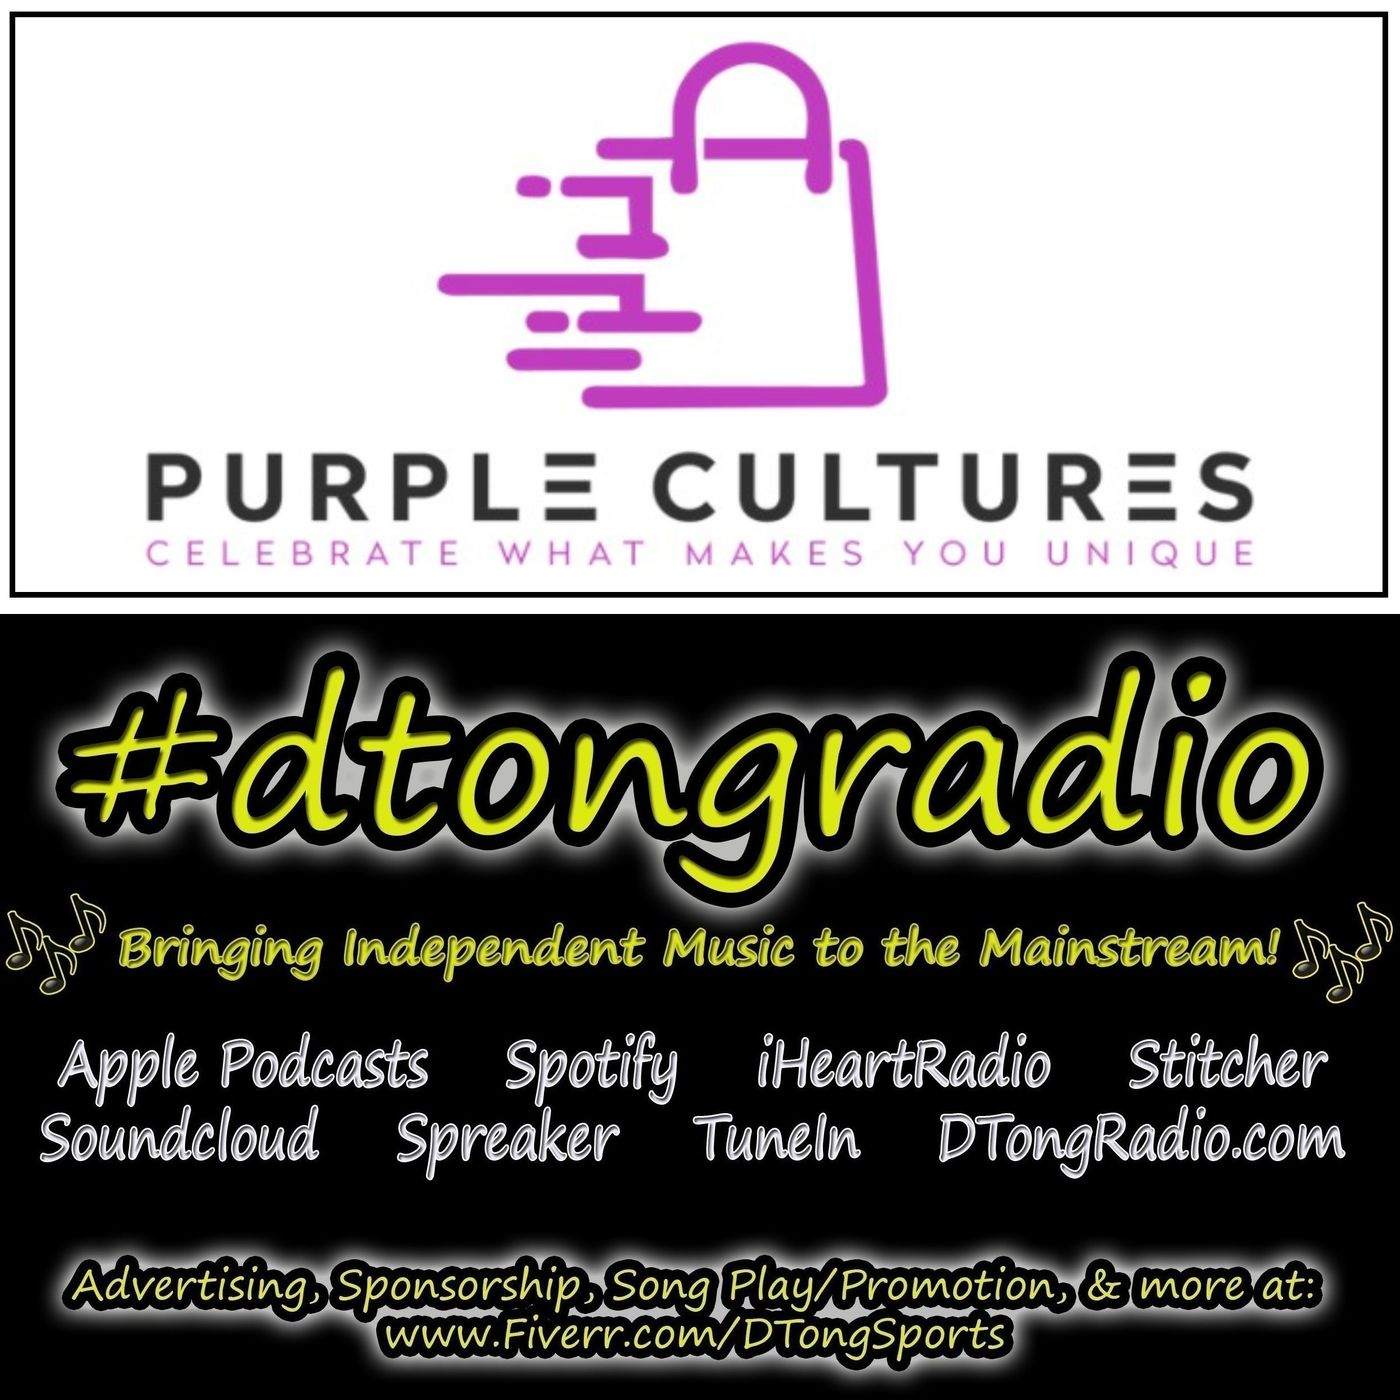 Independent Music Weekend Showcase - Powered by PurpleCultures.com